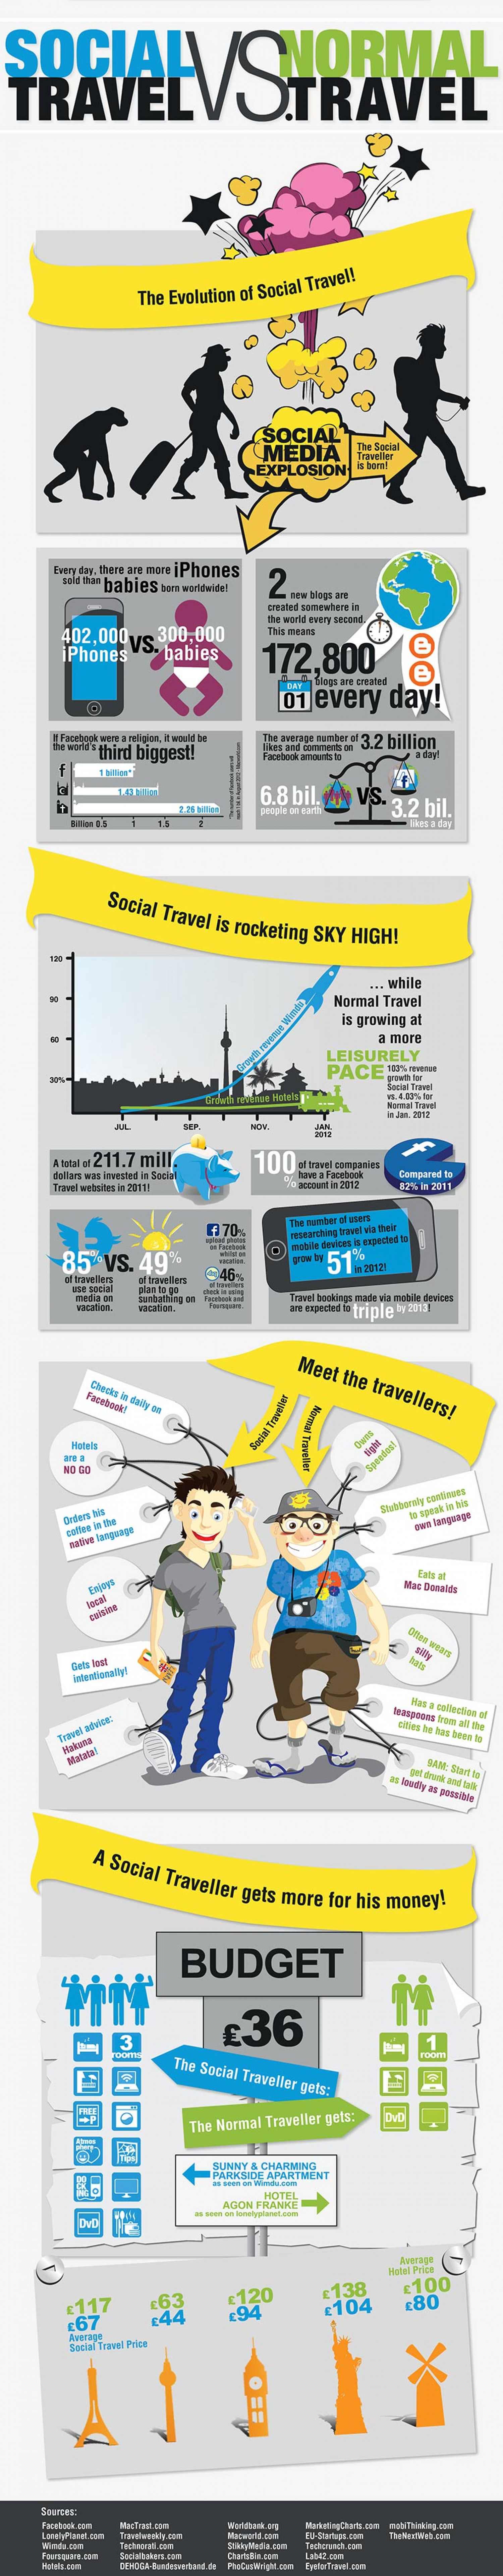 Social Traveller vs. Normal Traveller  Infographic